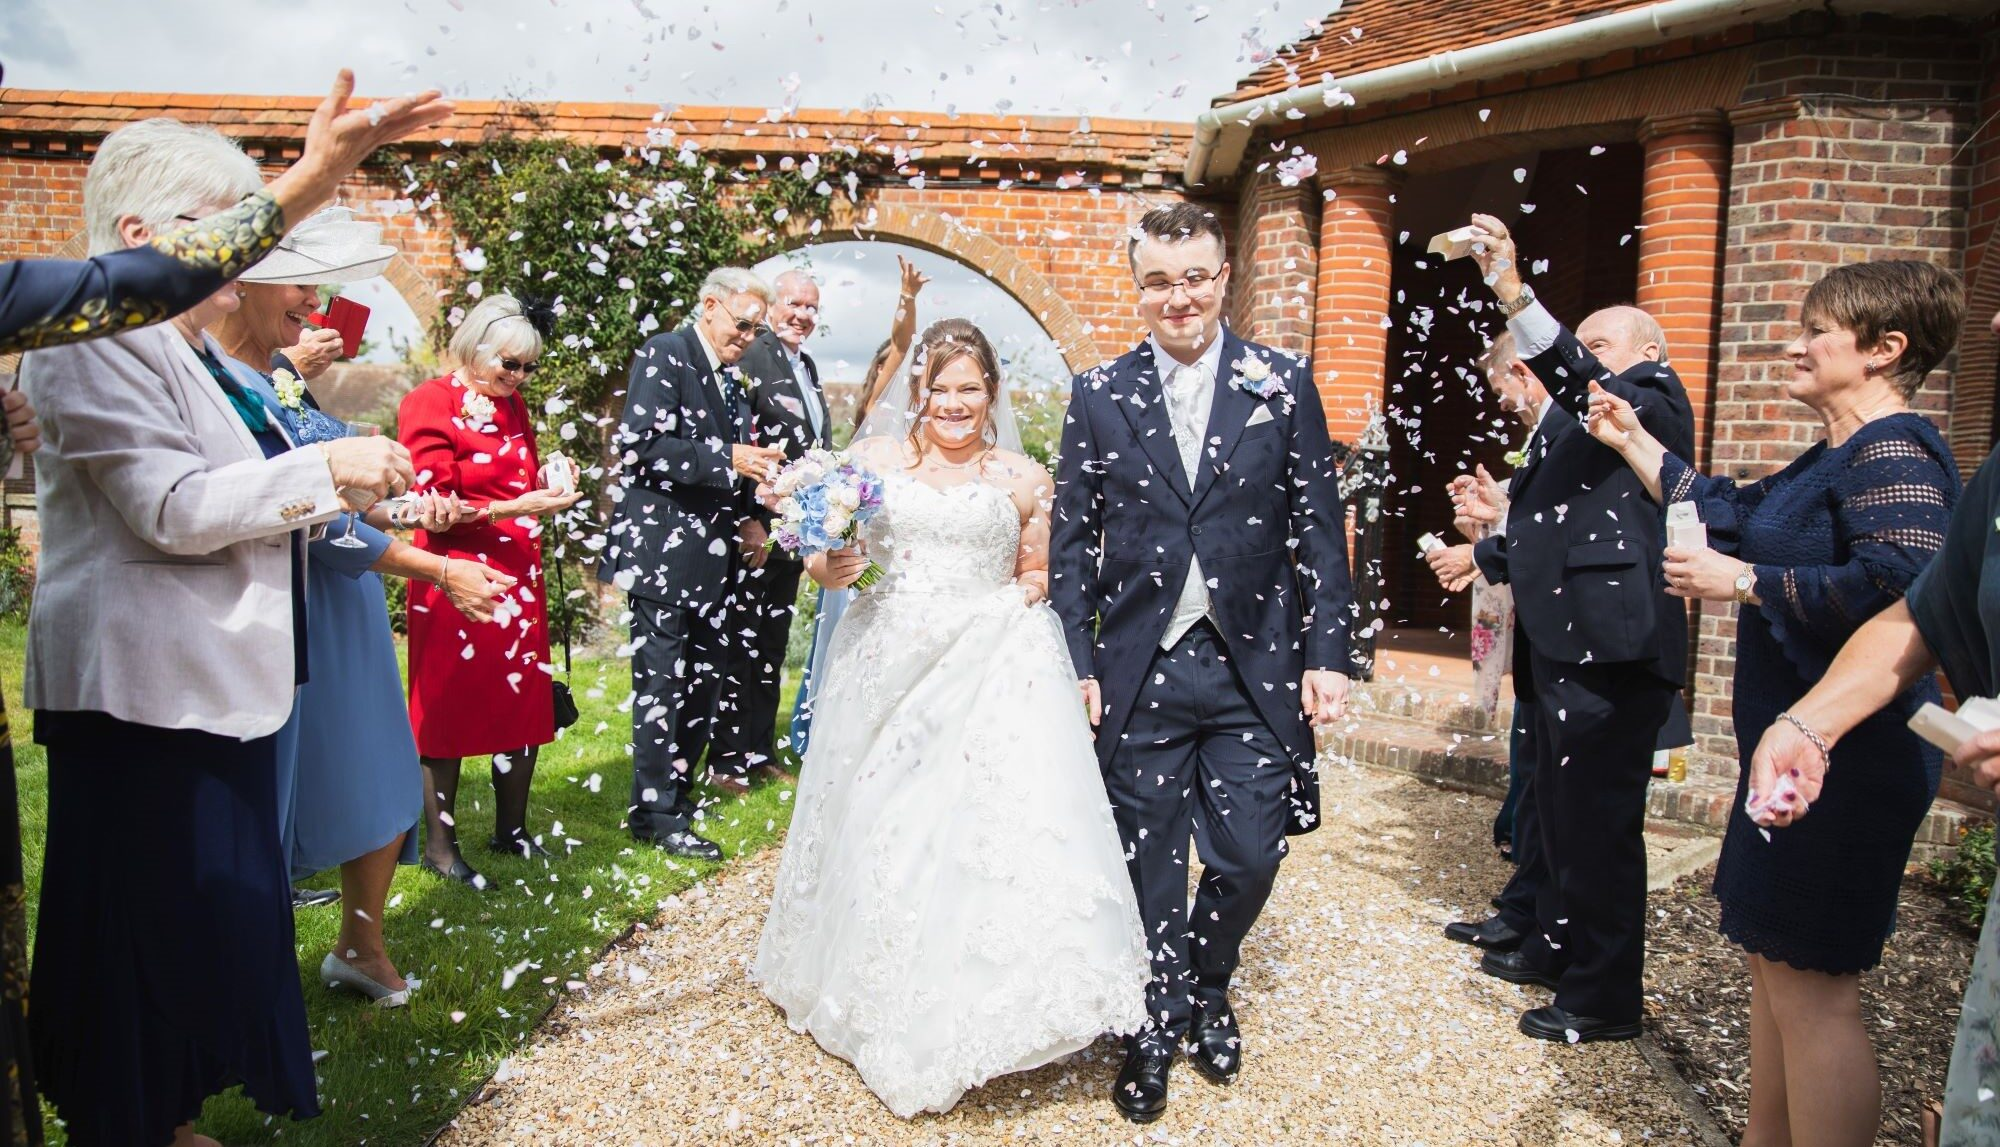 smiling couples confetti shower milton hill house steventon oxfordshire wedding photographer